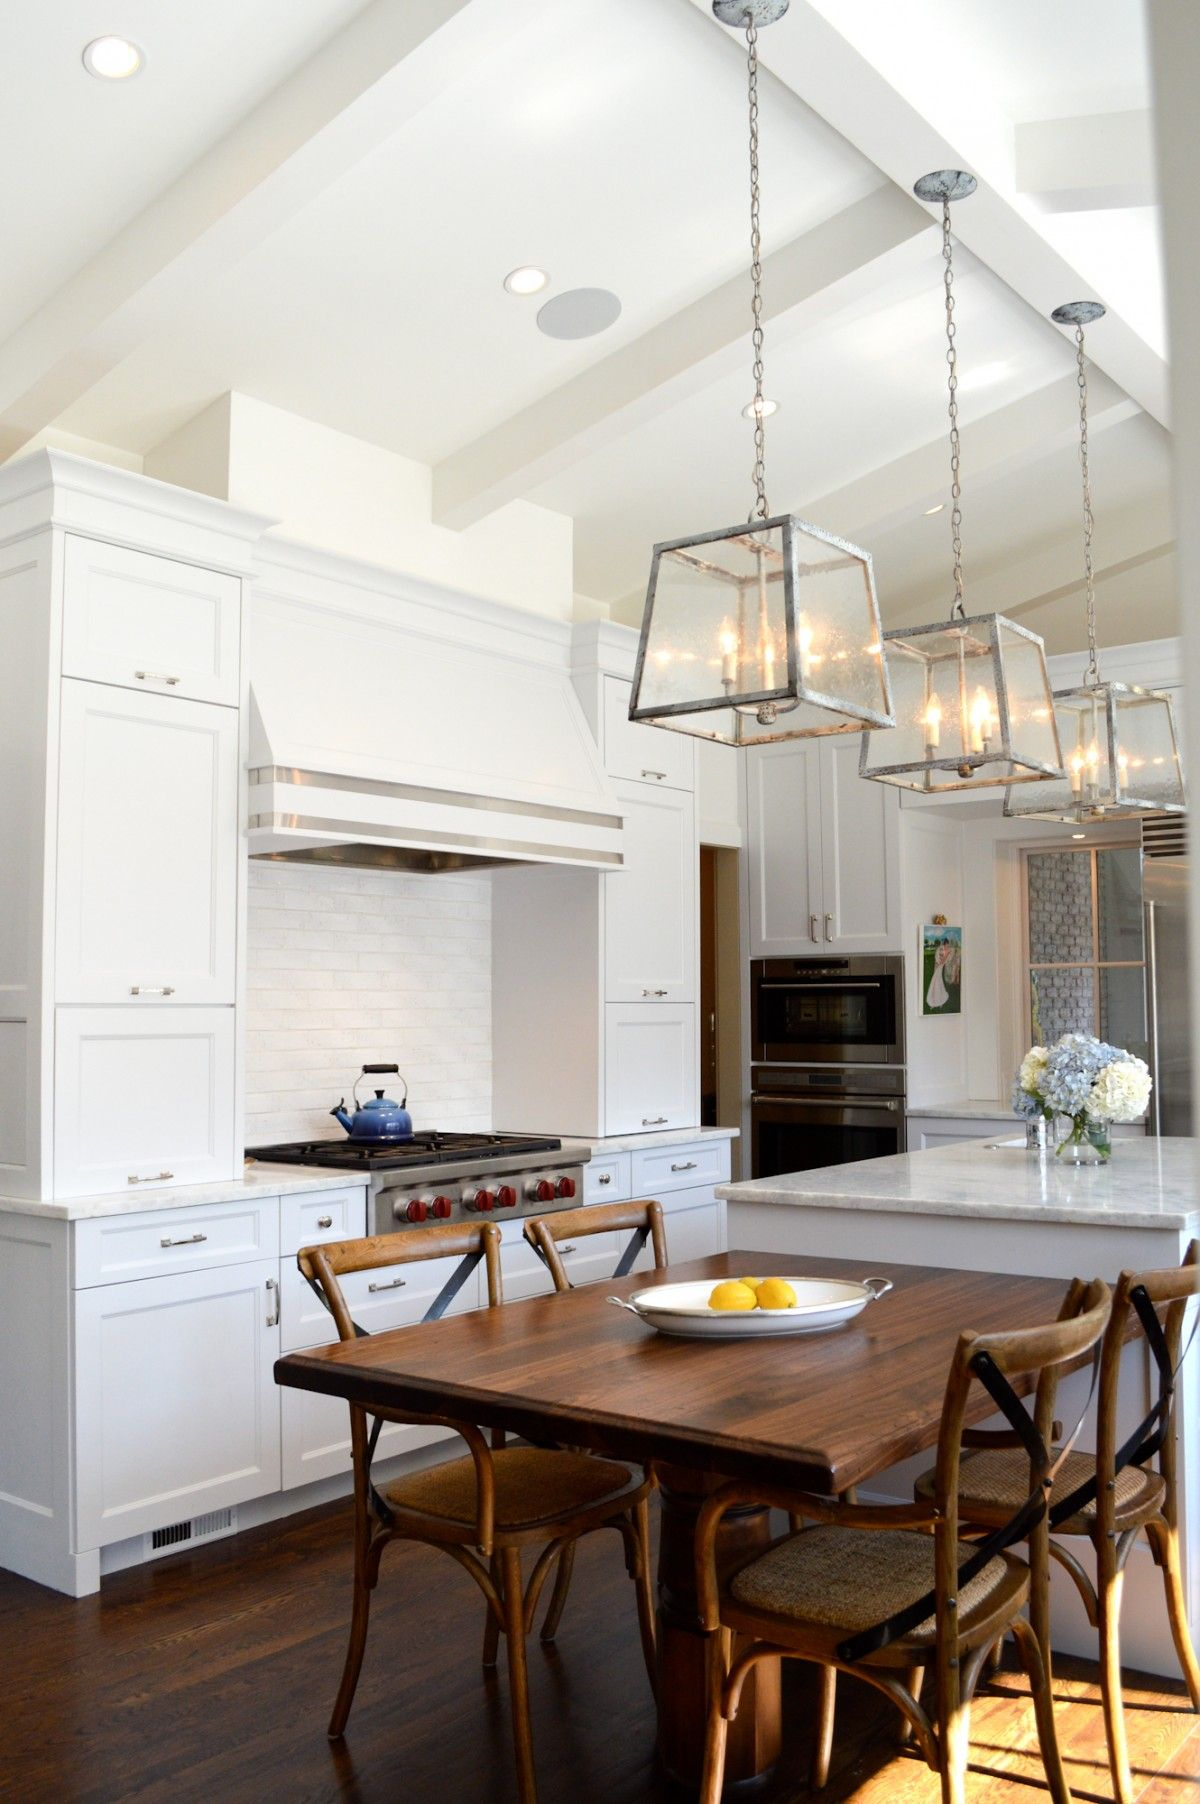 Cabinetry Integrated Hood Dining Table Off Island High Ceilings